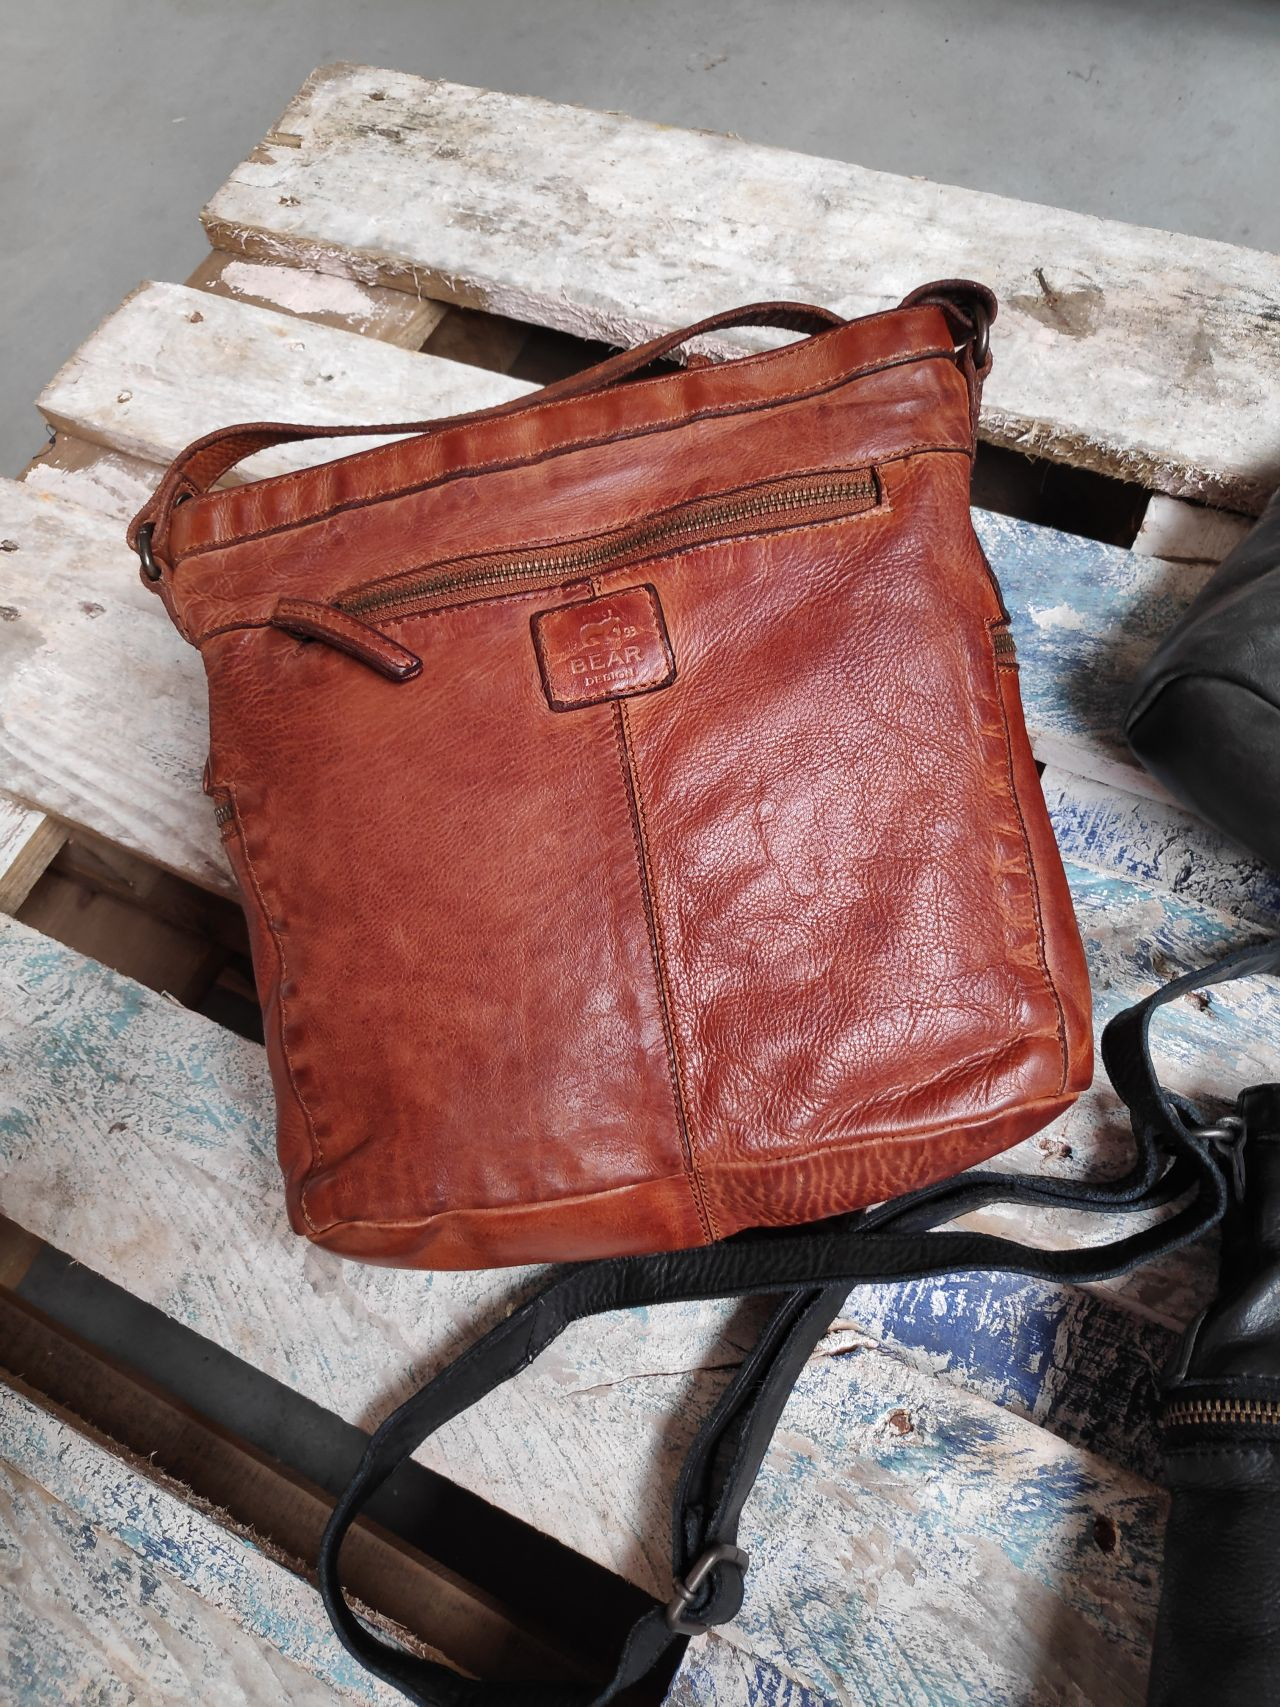 Bear Design Schultertasche CL35556 in cognac